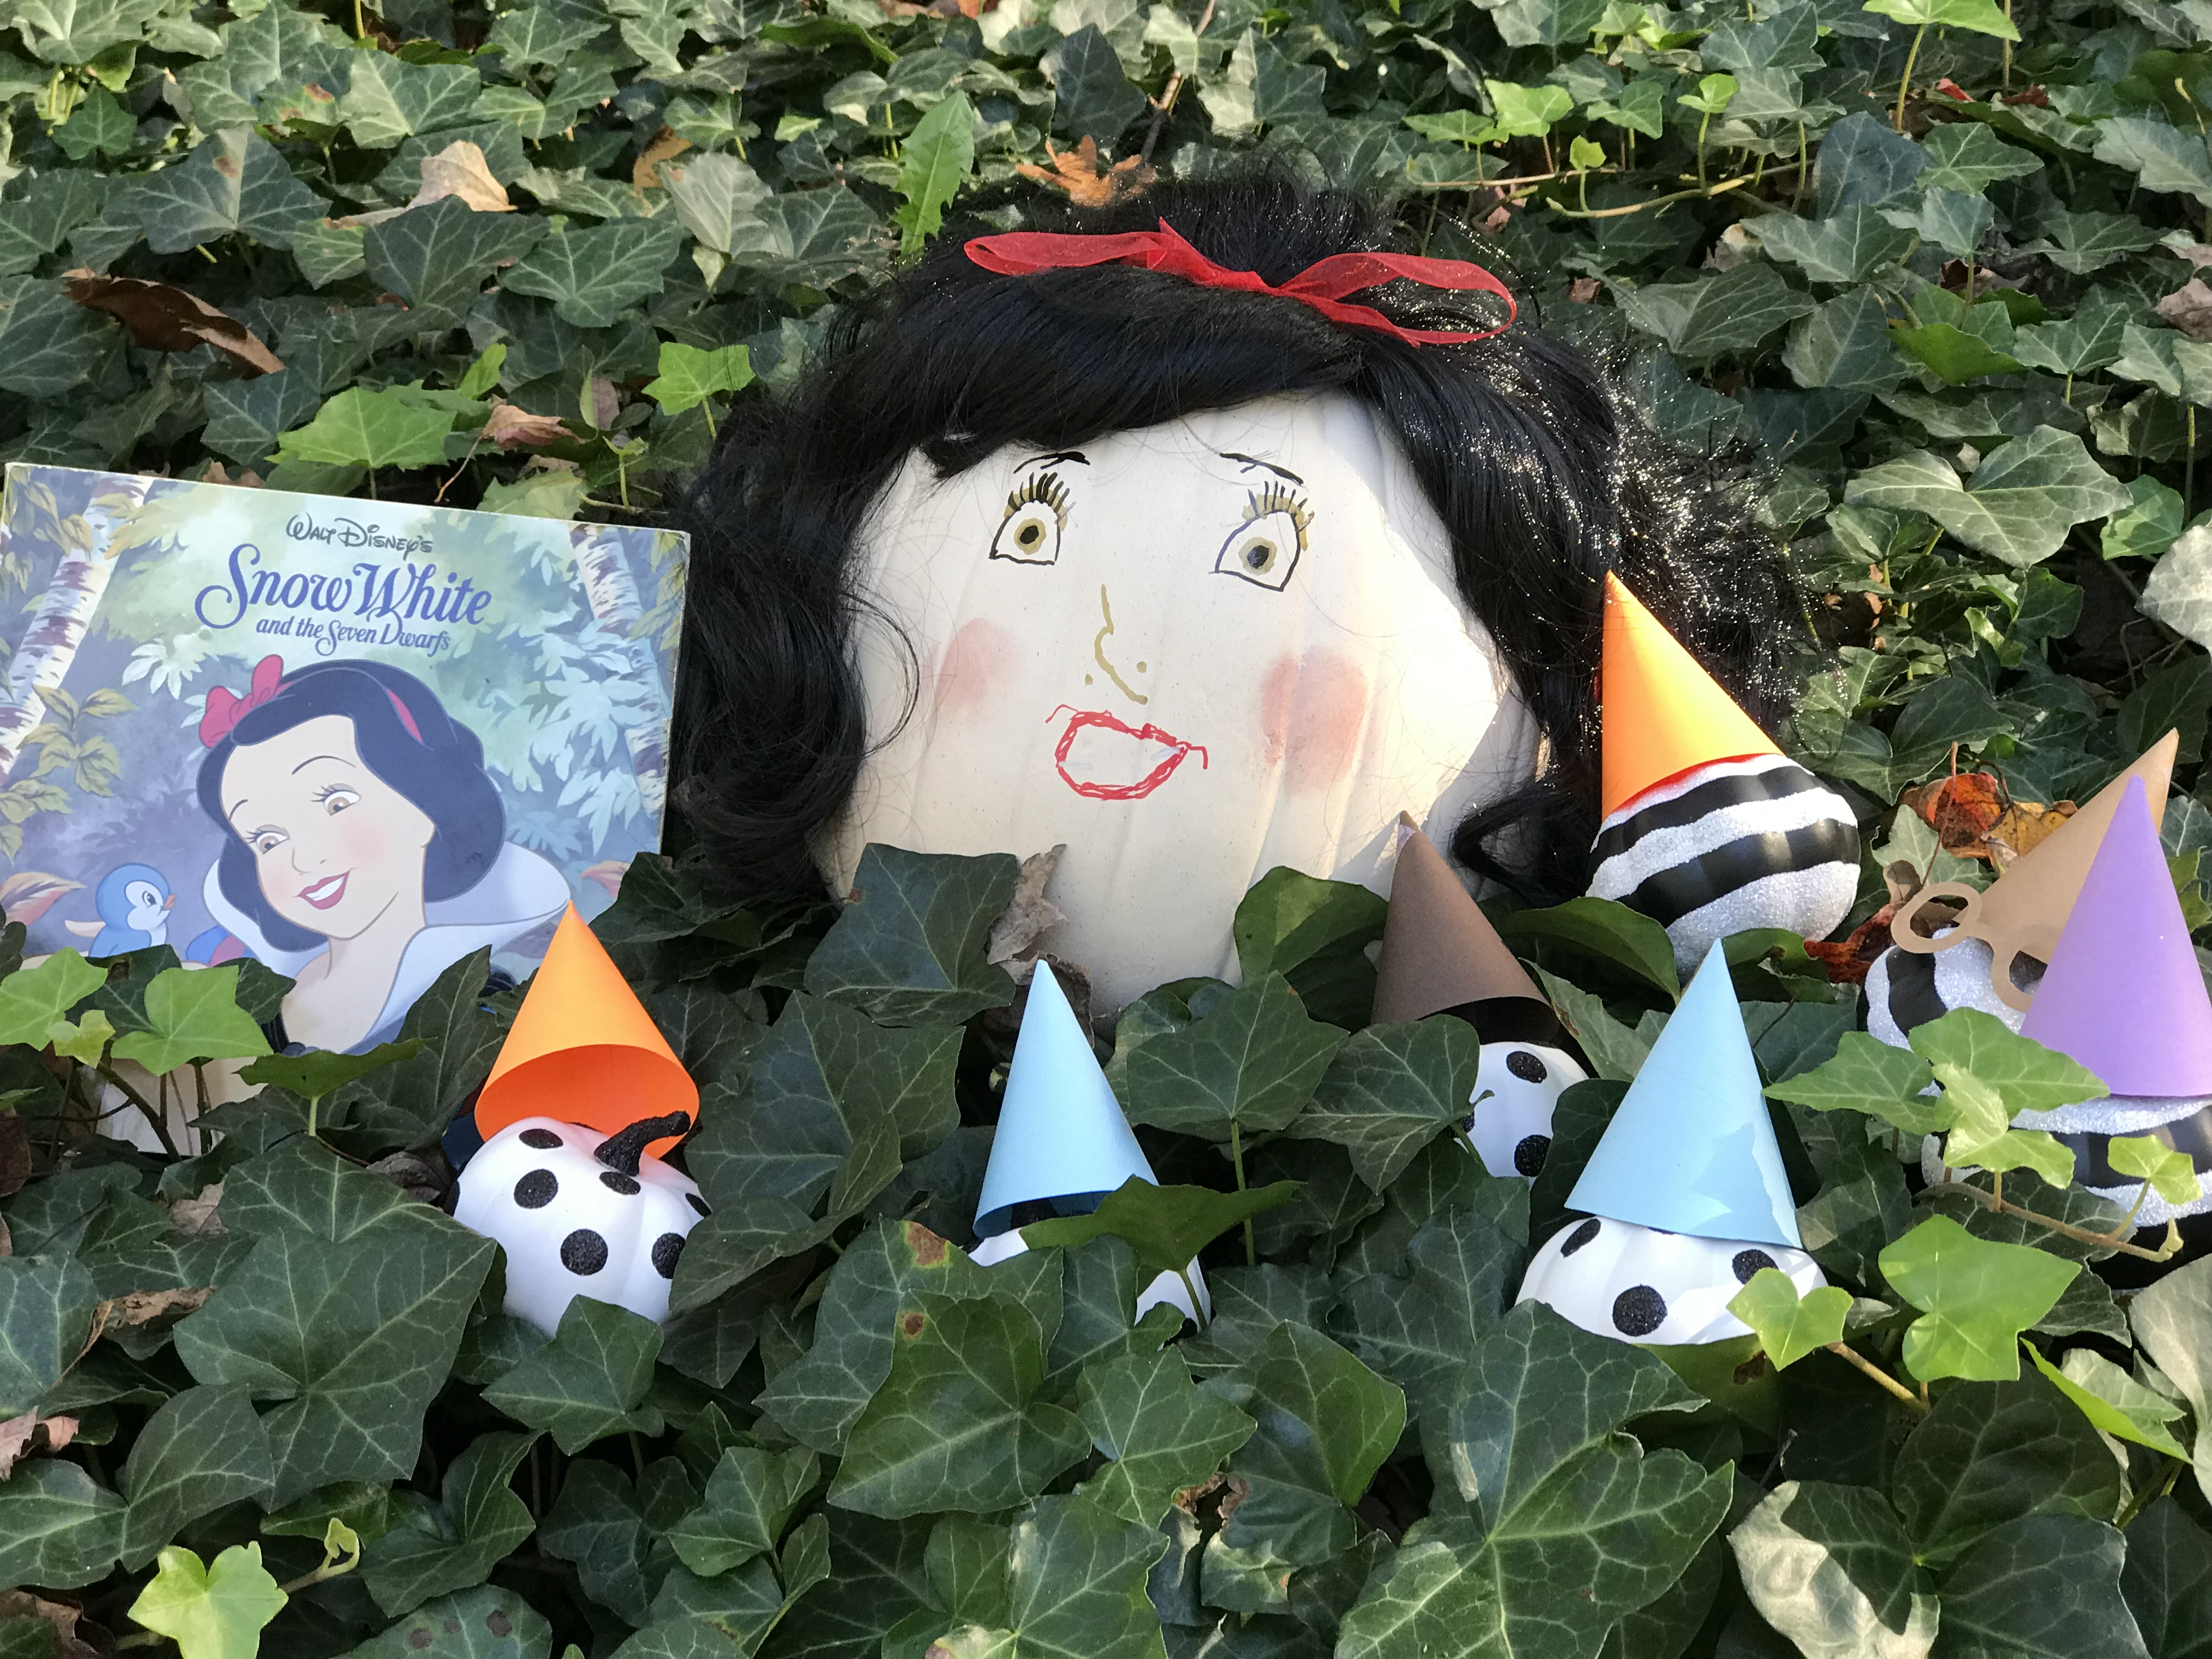 Snow White and the Seven Dwarfs pumpkin by Every Day is an Occasion